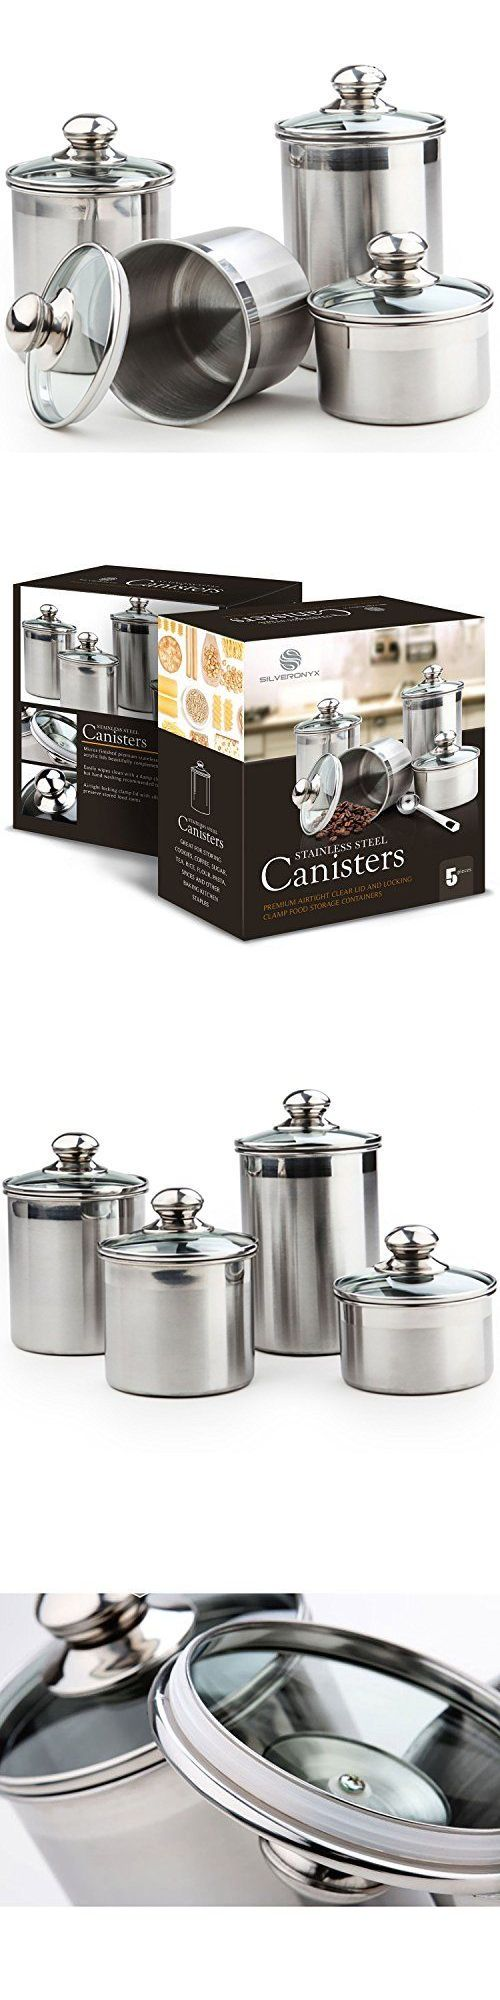 best 25 tea coffee sugar jars ideas only on pinterest tea and canisters and jars 20654 5 pc canister set stainless steel kitchen counter glass tea coffee